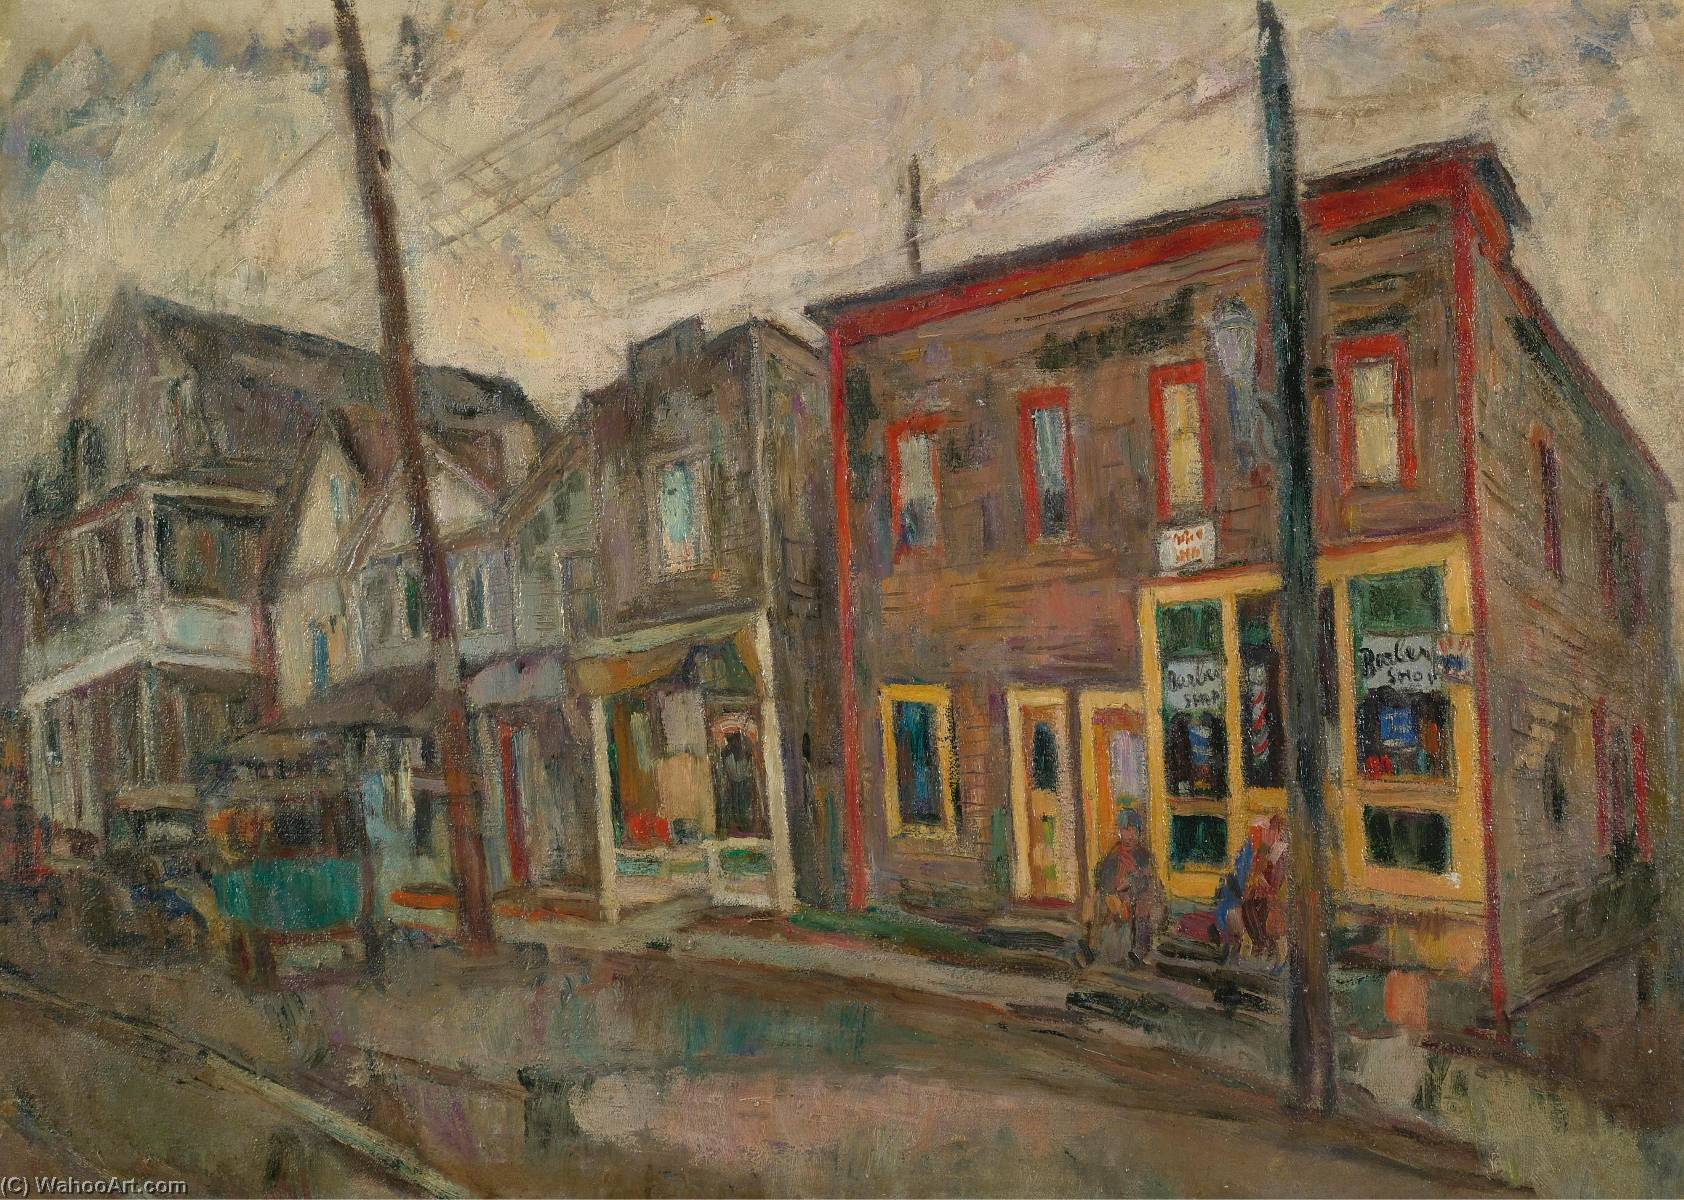 Street in the Bronx, Oil On Canvas by Abraham Manievich